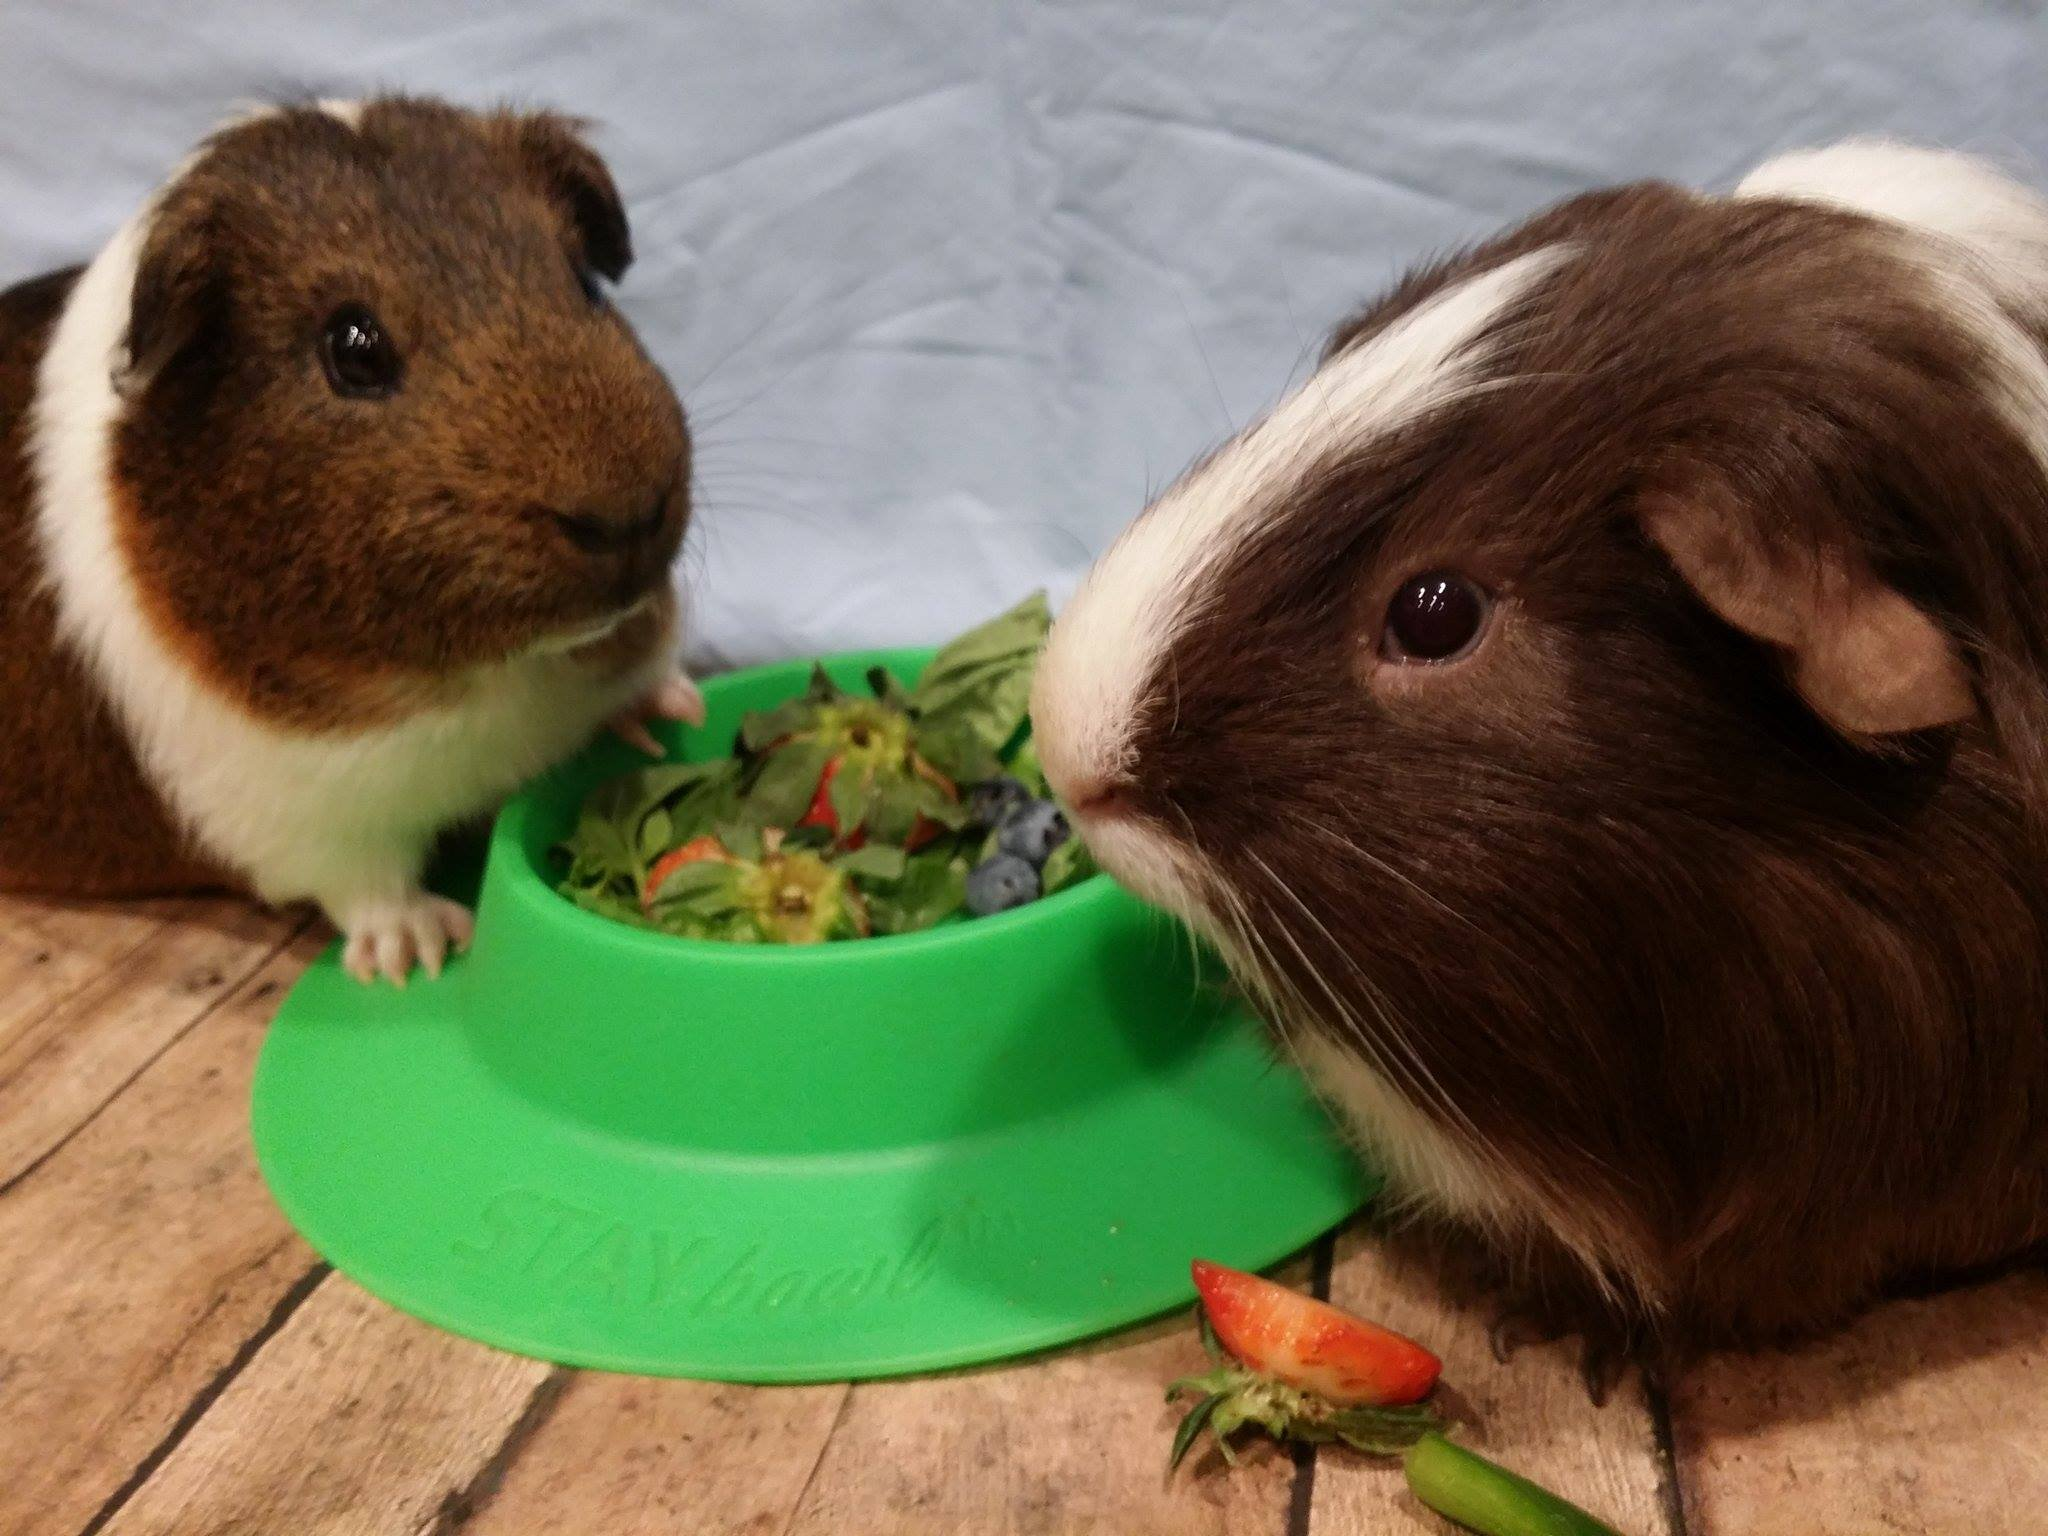 STAYbowl Tip-Proof Bowl for Guinea Pigs and Other Small Pets - Spring Green - Large 3/4 Cup Size New